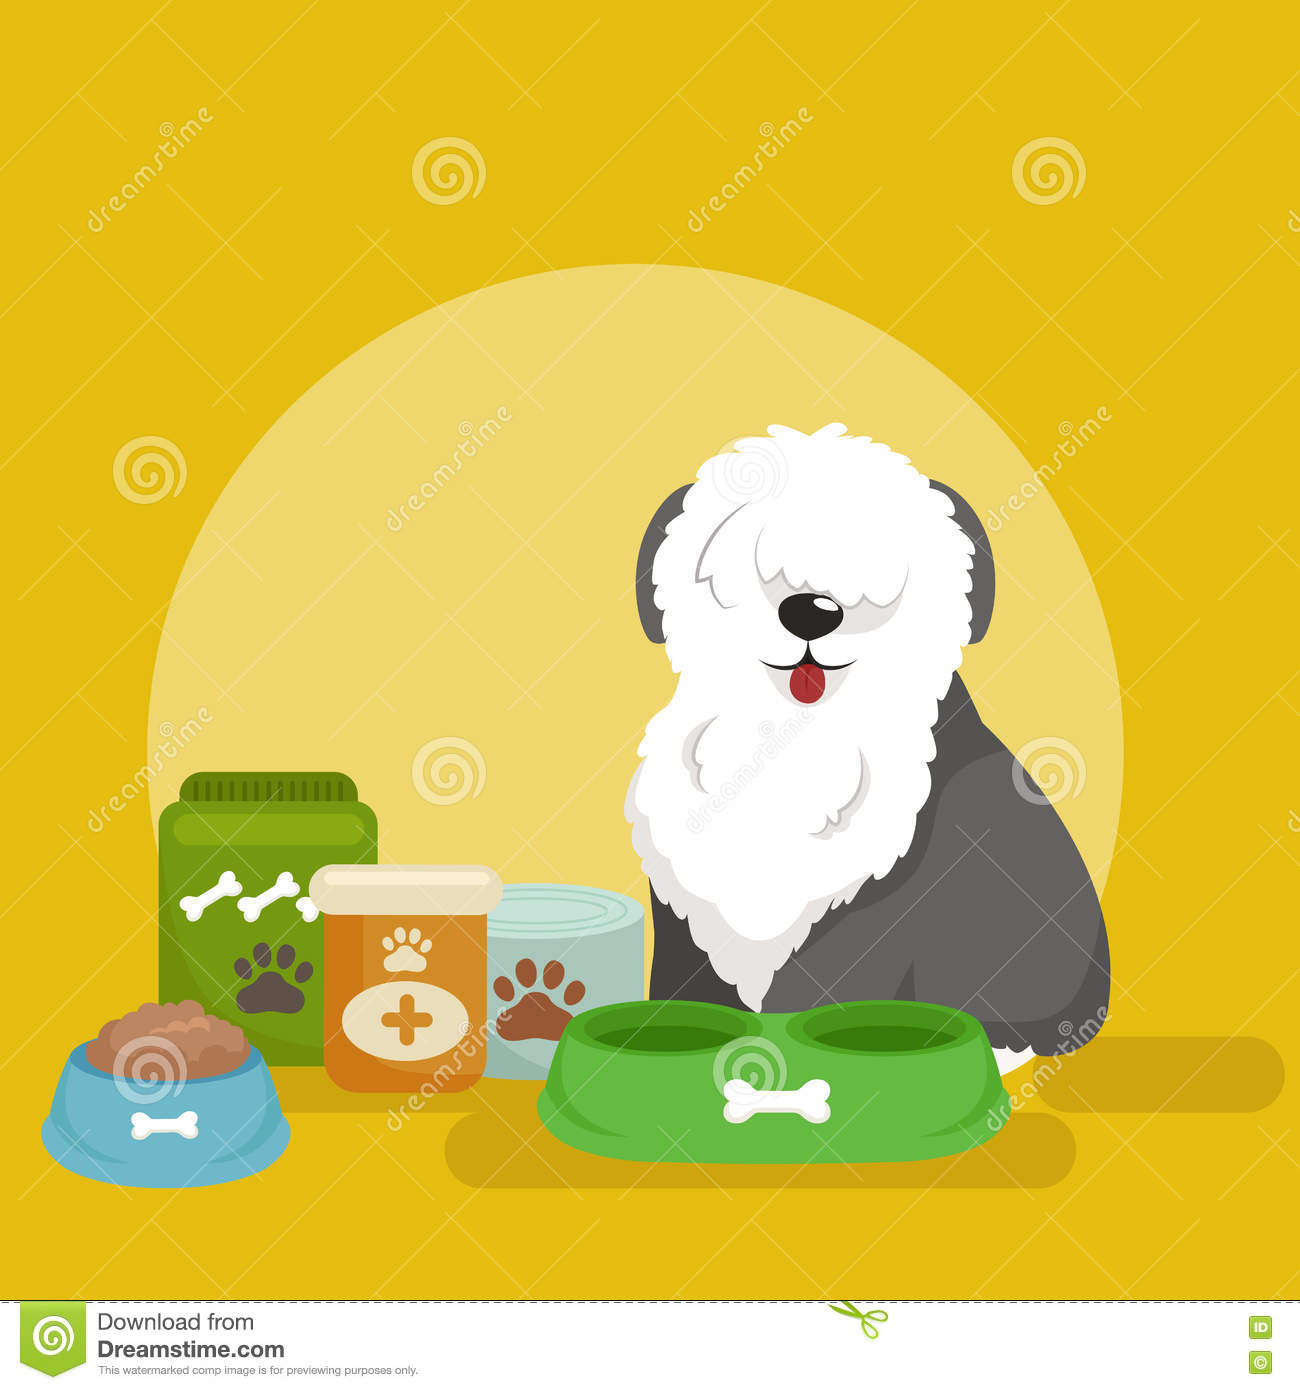 bone meal for dogs. Download Pet Food In Bowl, Bone Meal For Dogs Eating Vector Stock - Illustration